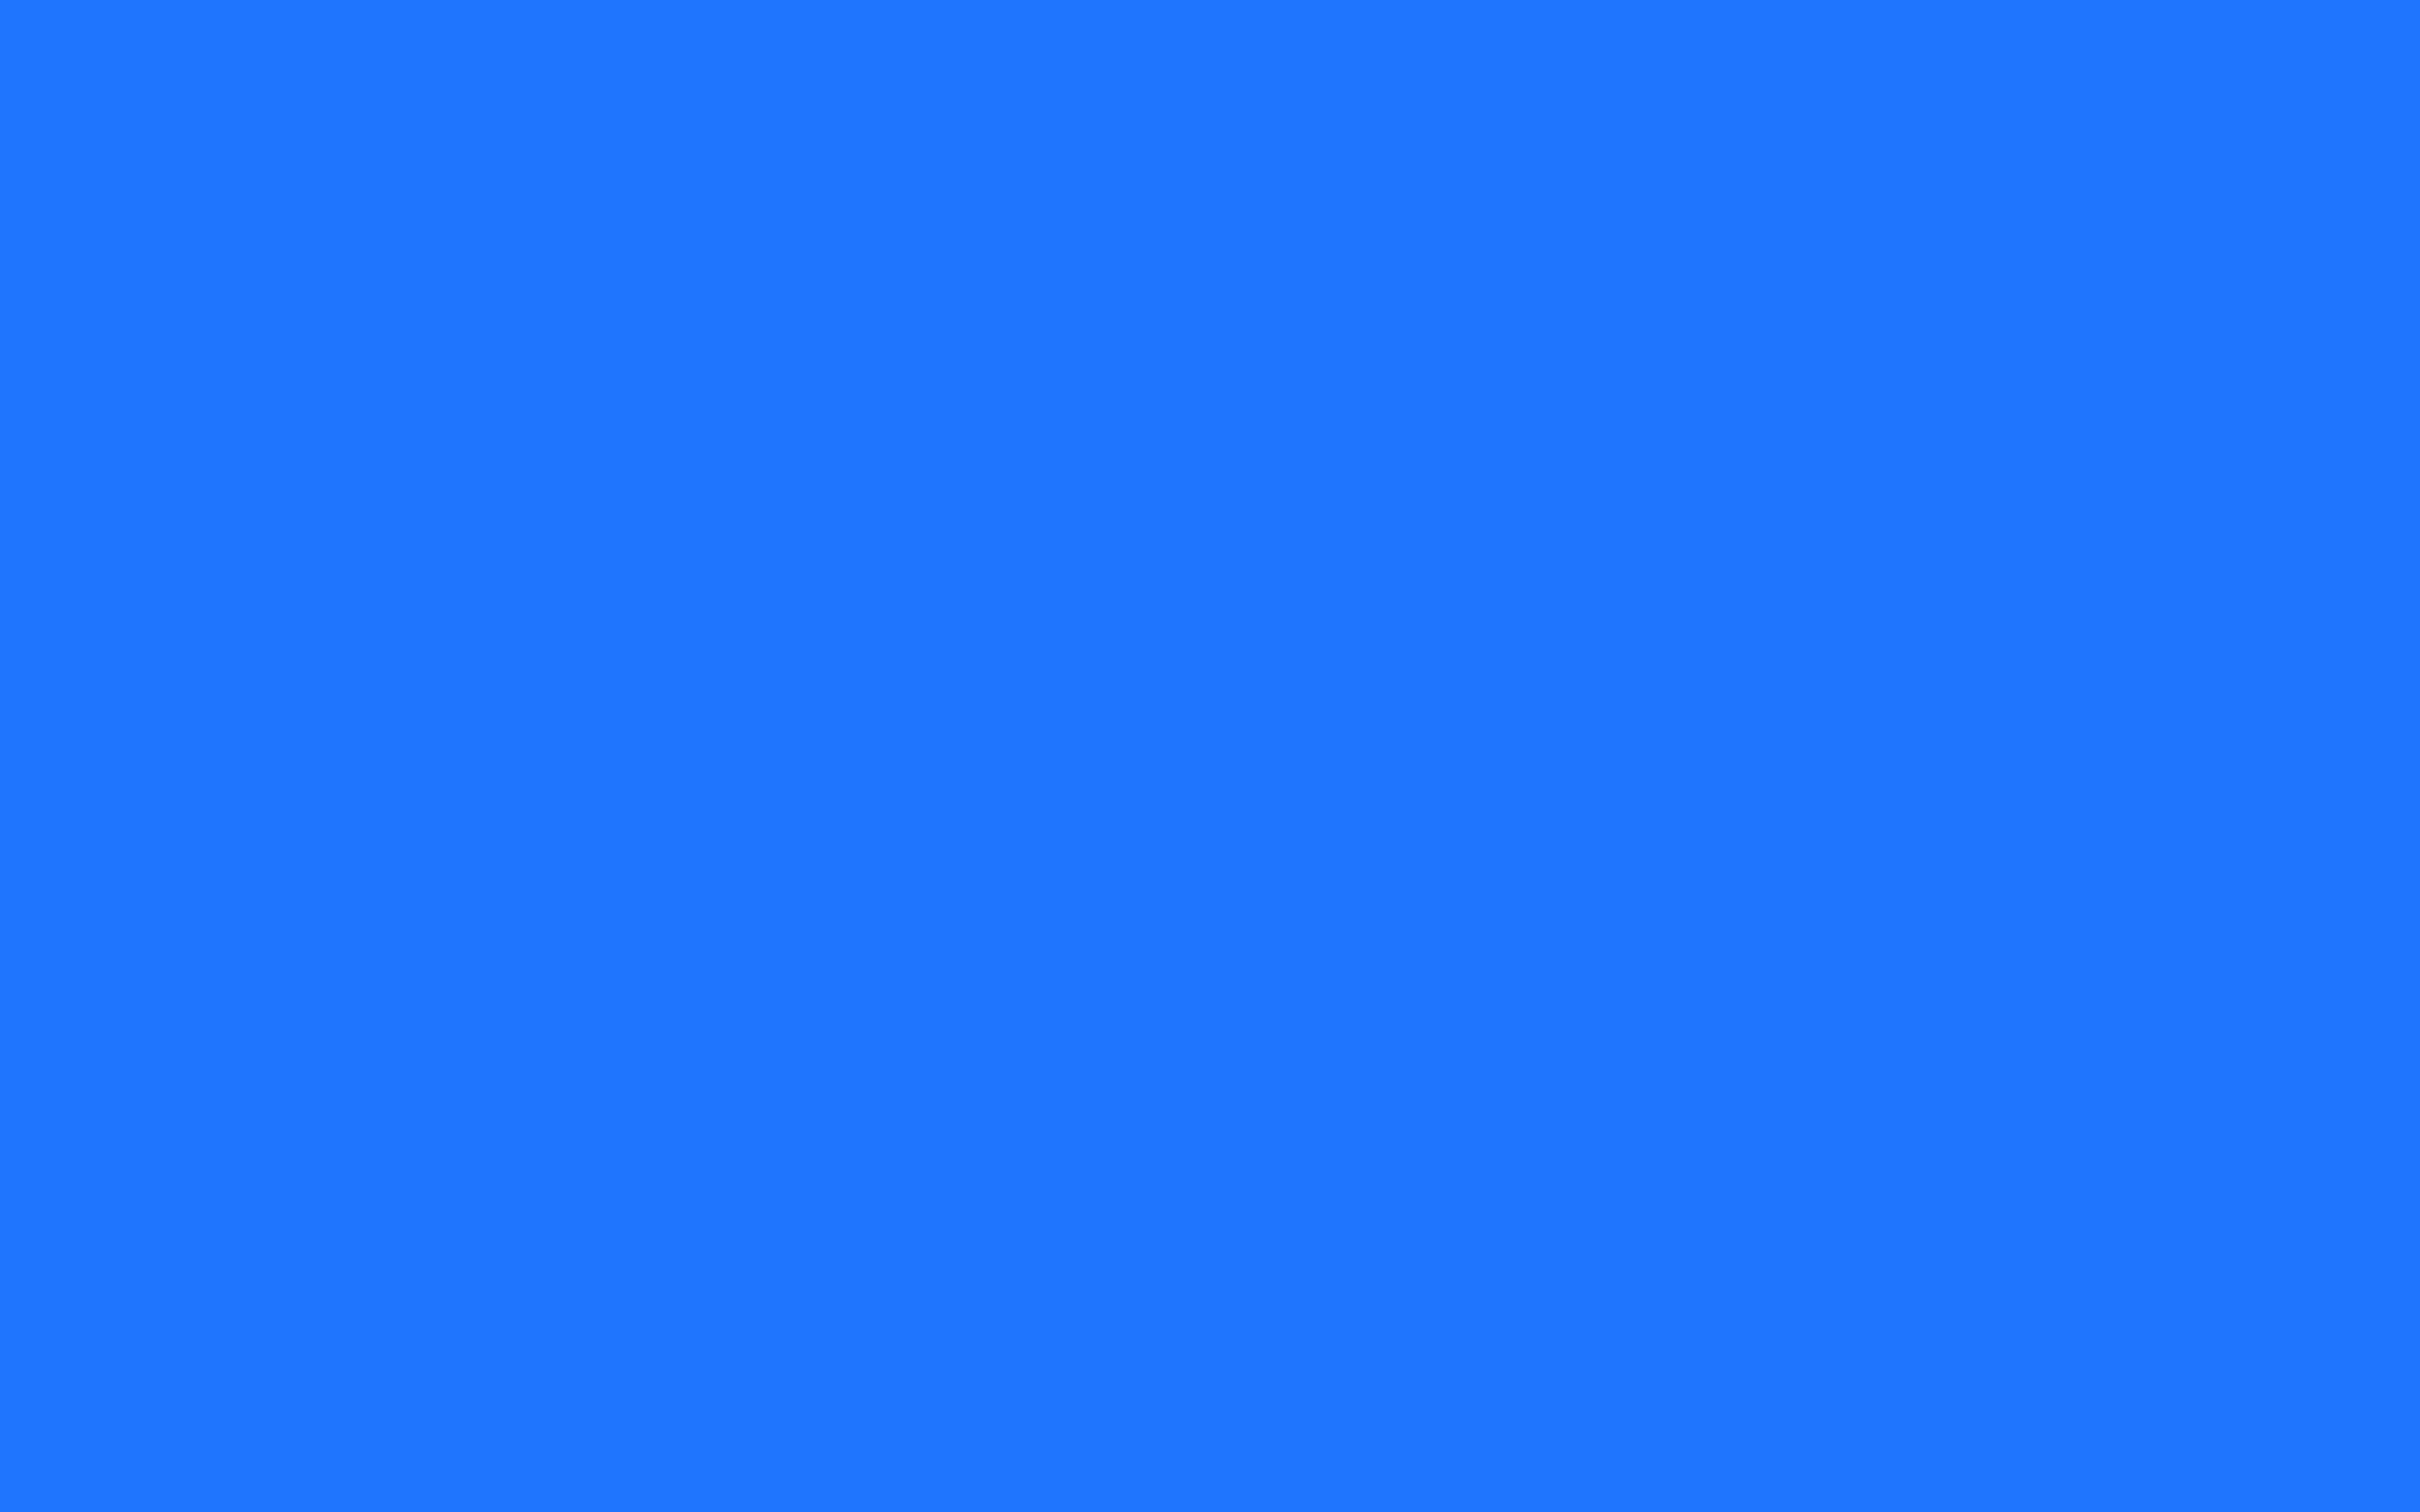 2560x1600 Blue Crayola Solid Color Background